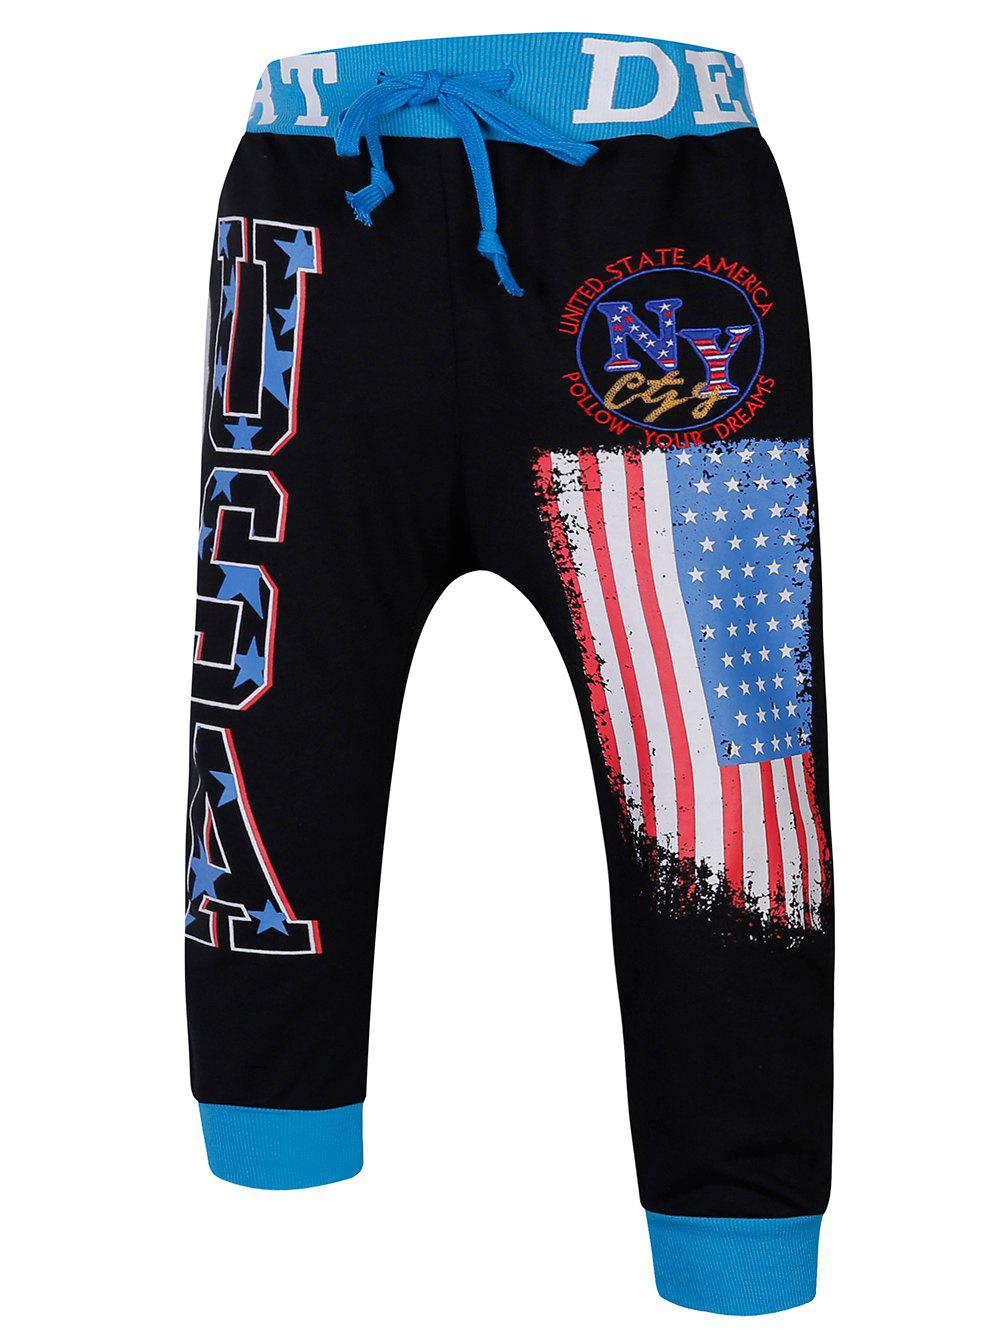 Lace-Up Color Block Spliced Flag and Letters Print Beam Feet Men's Jogger Shorts - BLUE/BLACK M